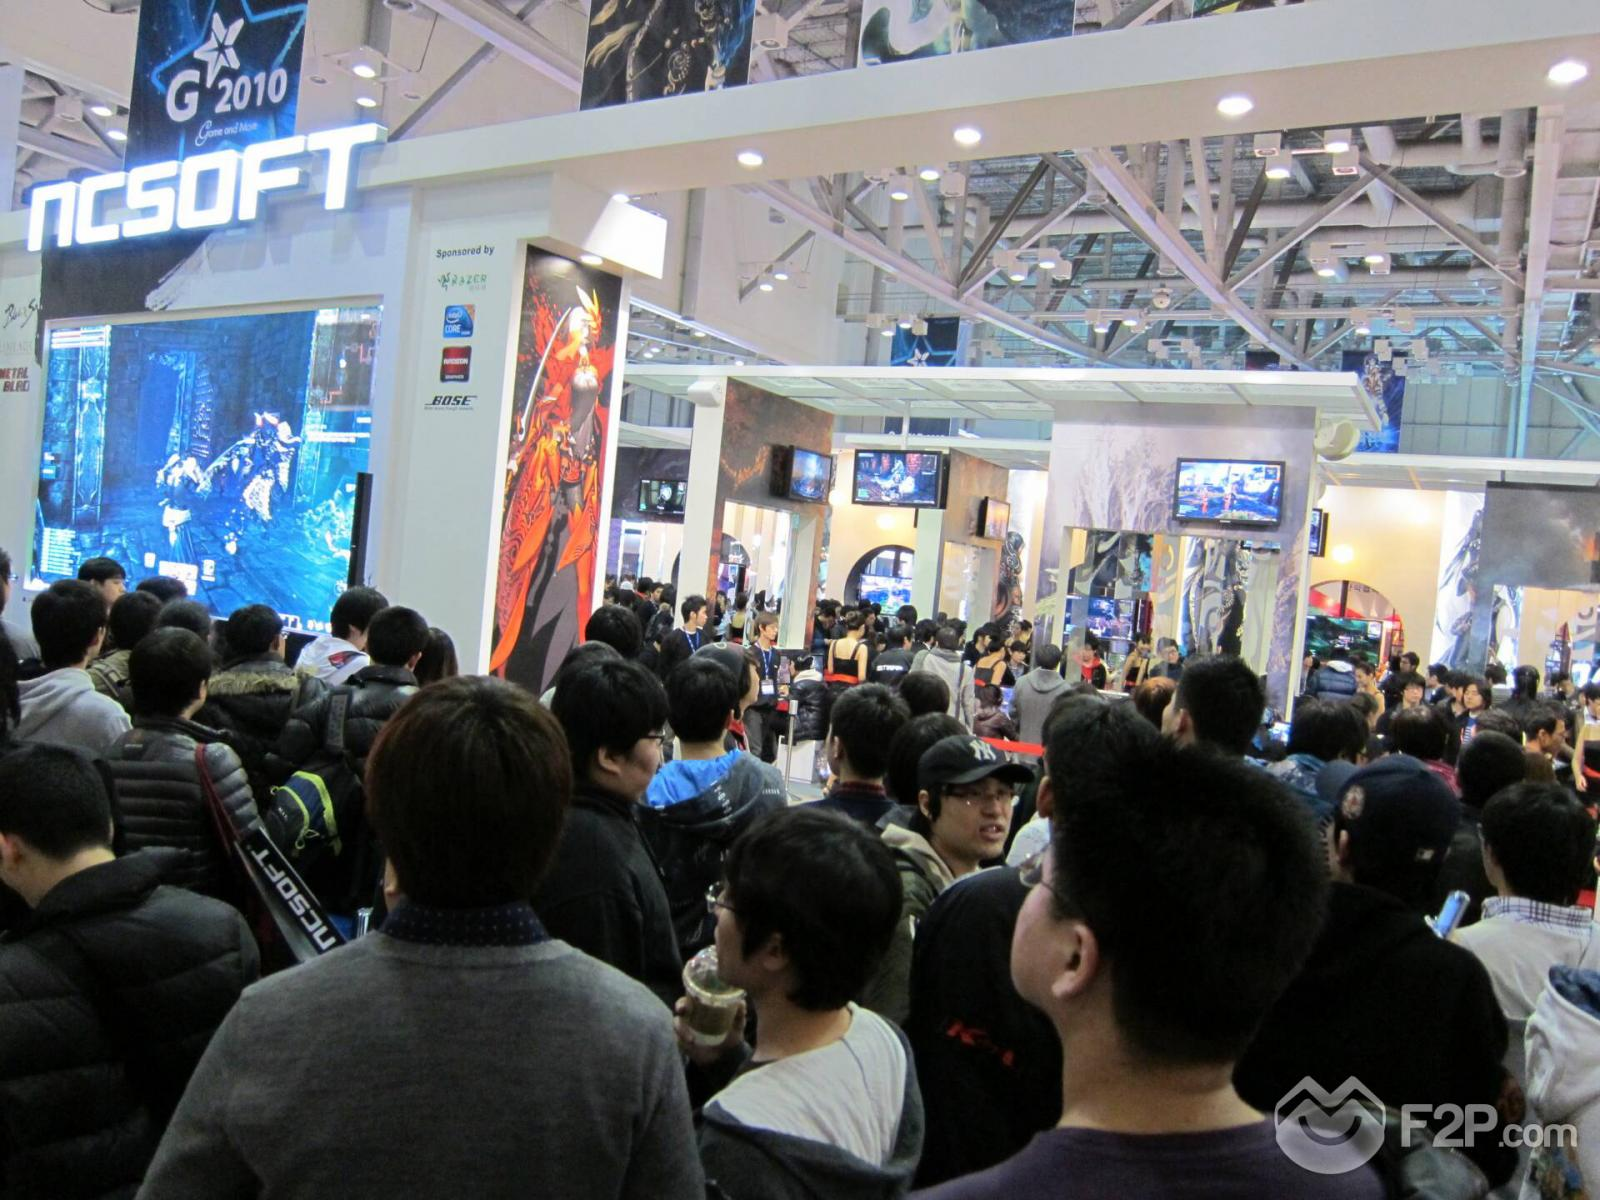 Click image for larger version. Name:	Gstar 2010 F2P first day 28.jpg Views:	60 Size:	239.4 KB ID:	1880